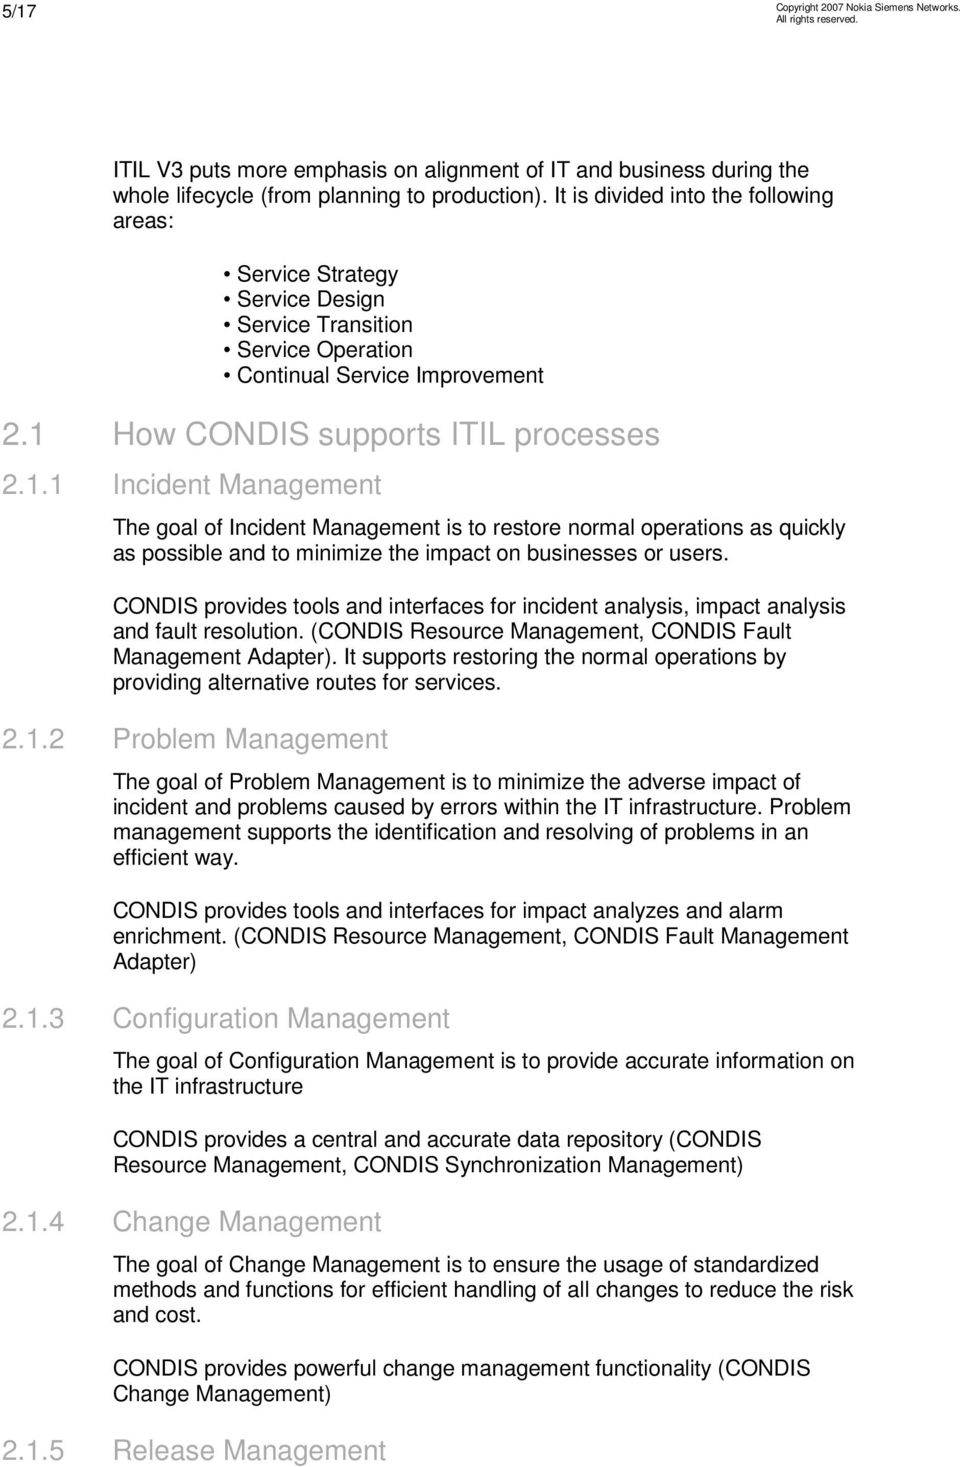 How CONDIS supports ITIL processes 2.1.1 Incident The goal of Incident is to restore normal operations as quickly as possible and to minimize the impact on businesses or users.